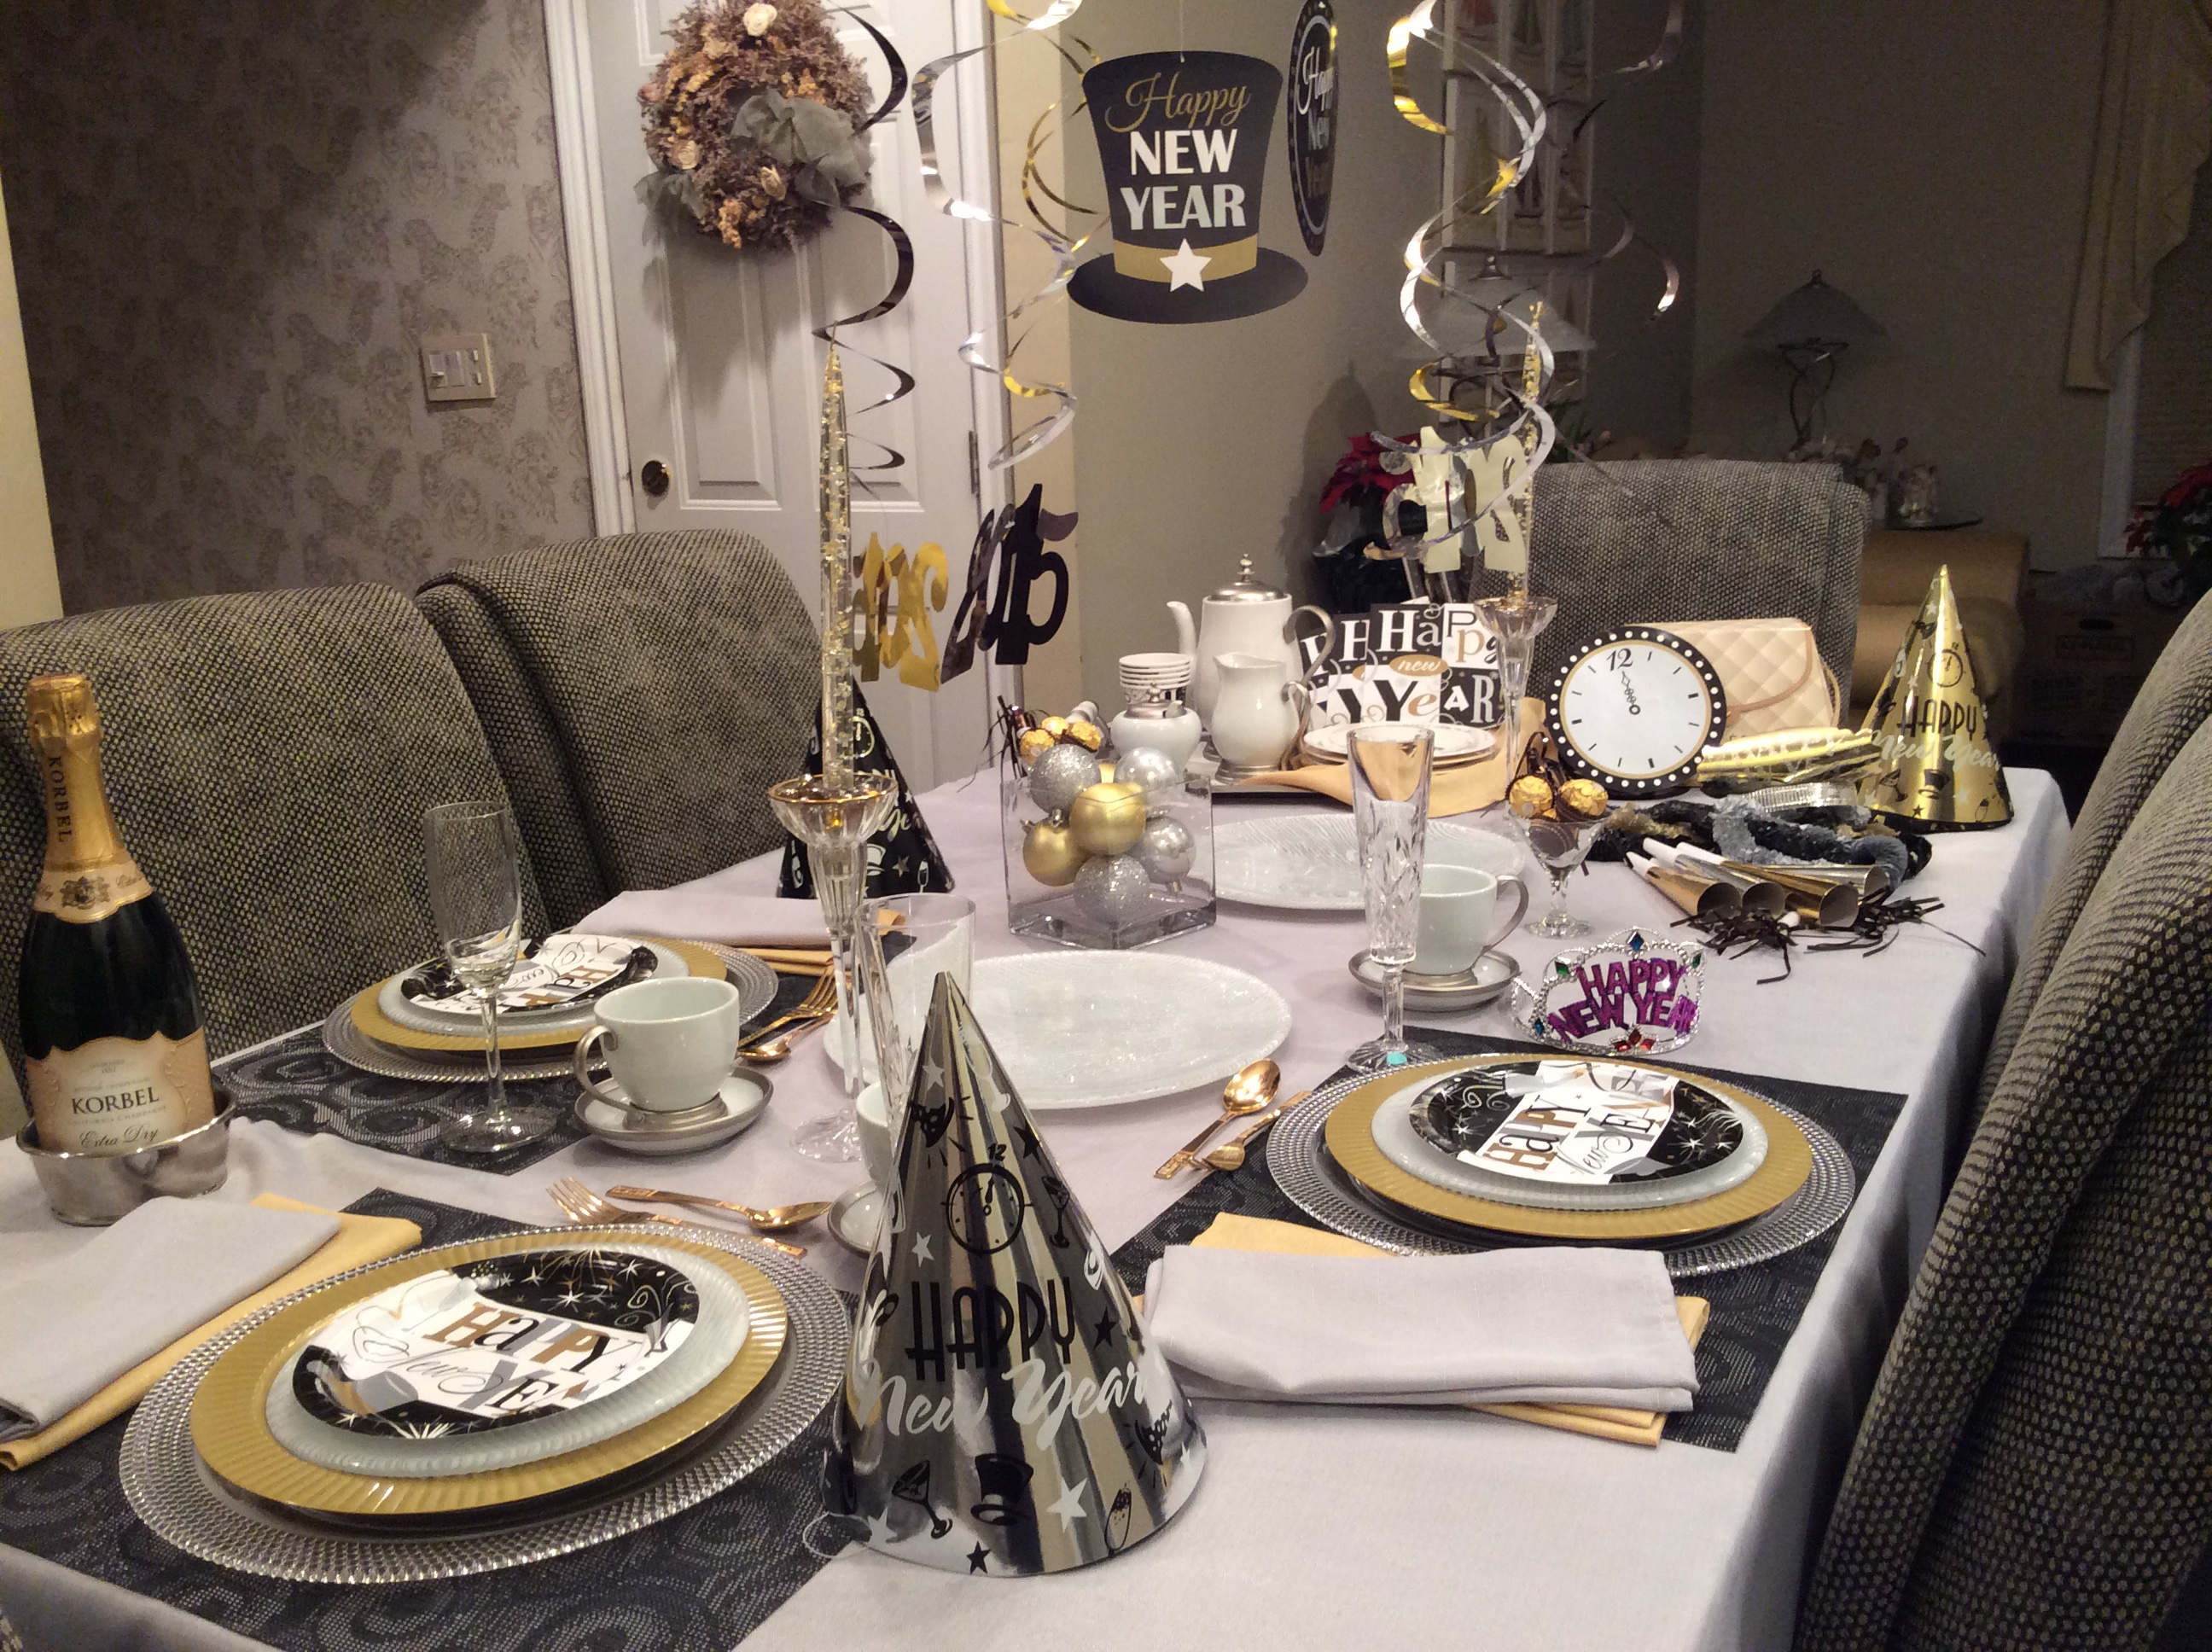 New year s eve dishing with diane - New year dinner table setting ...